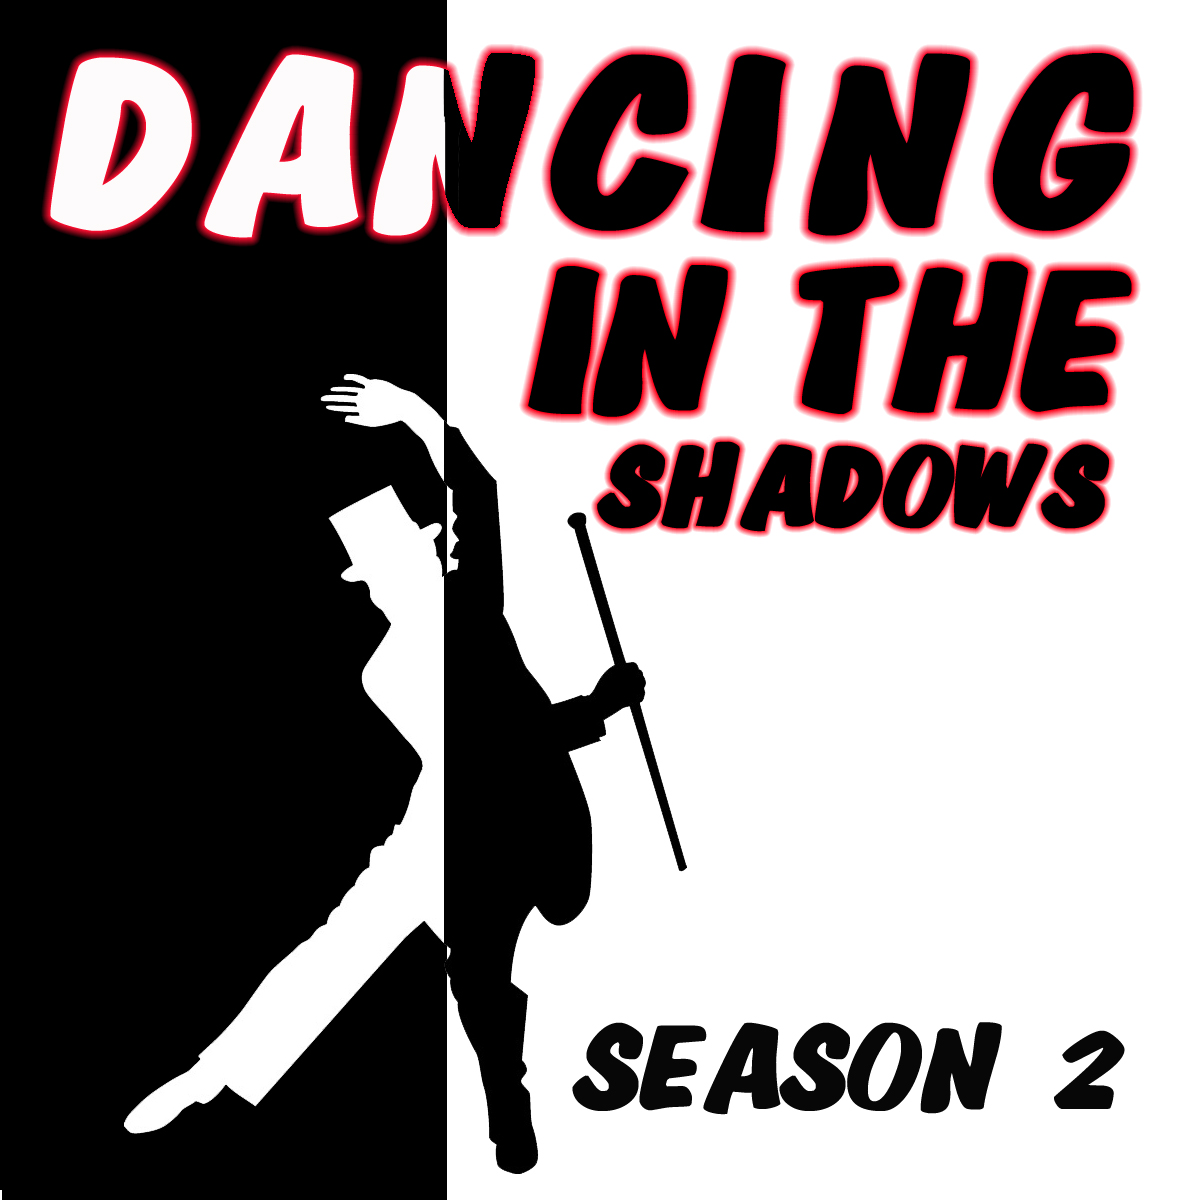 Dancing in the Shadows S-02 Ep. 2 show art